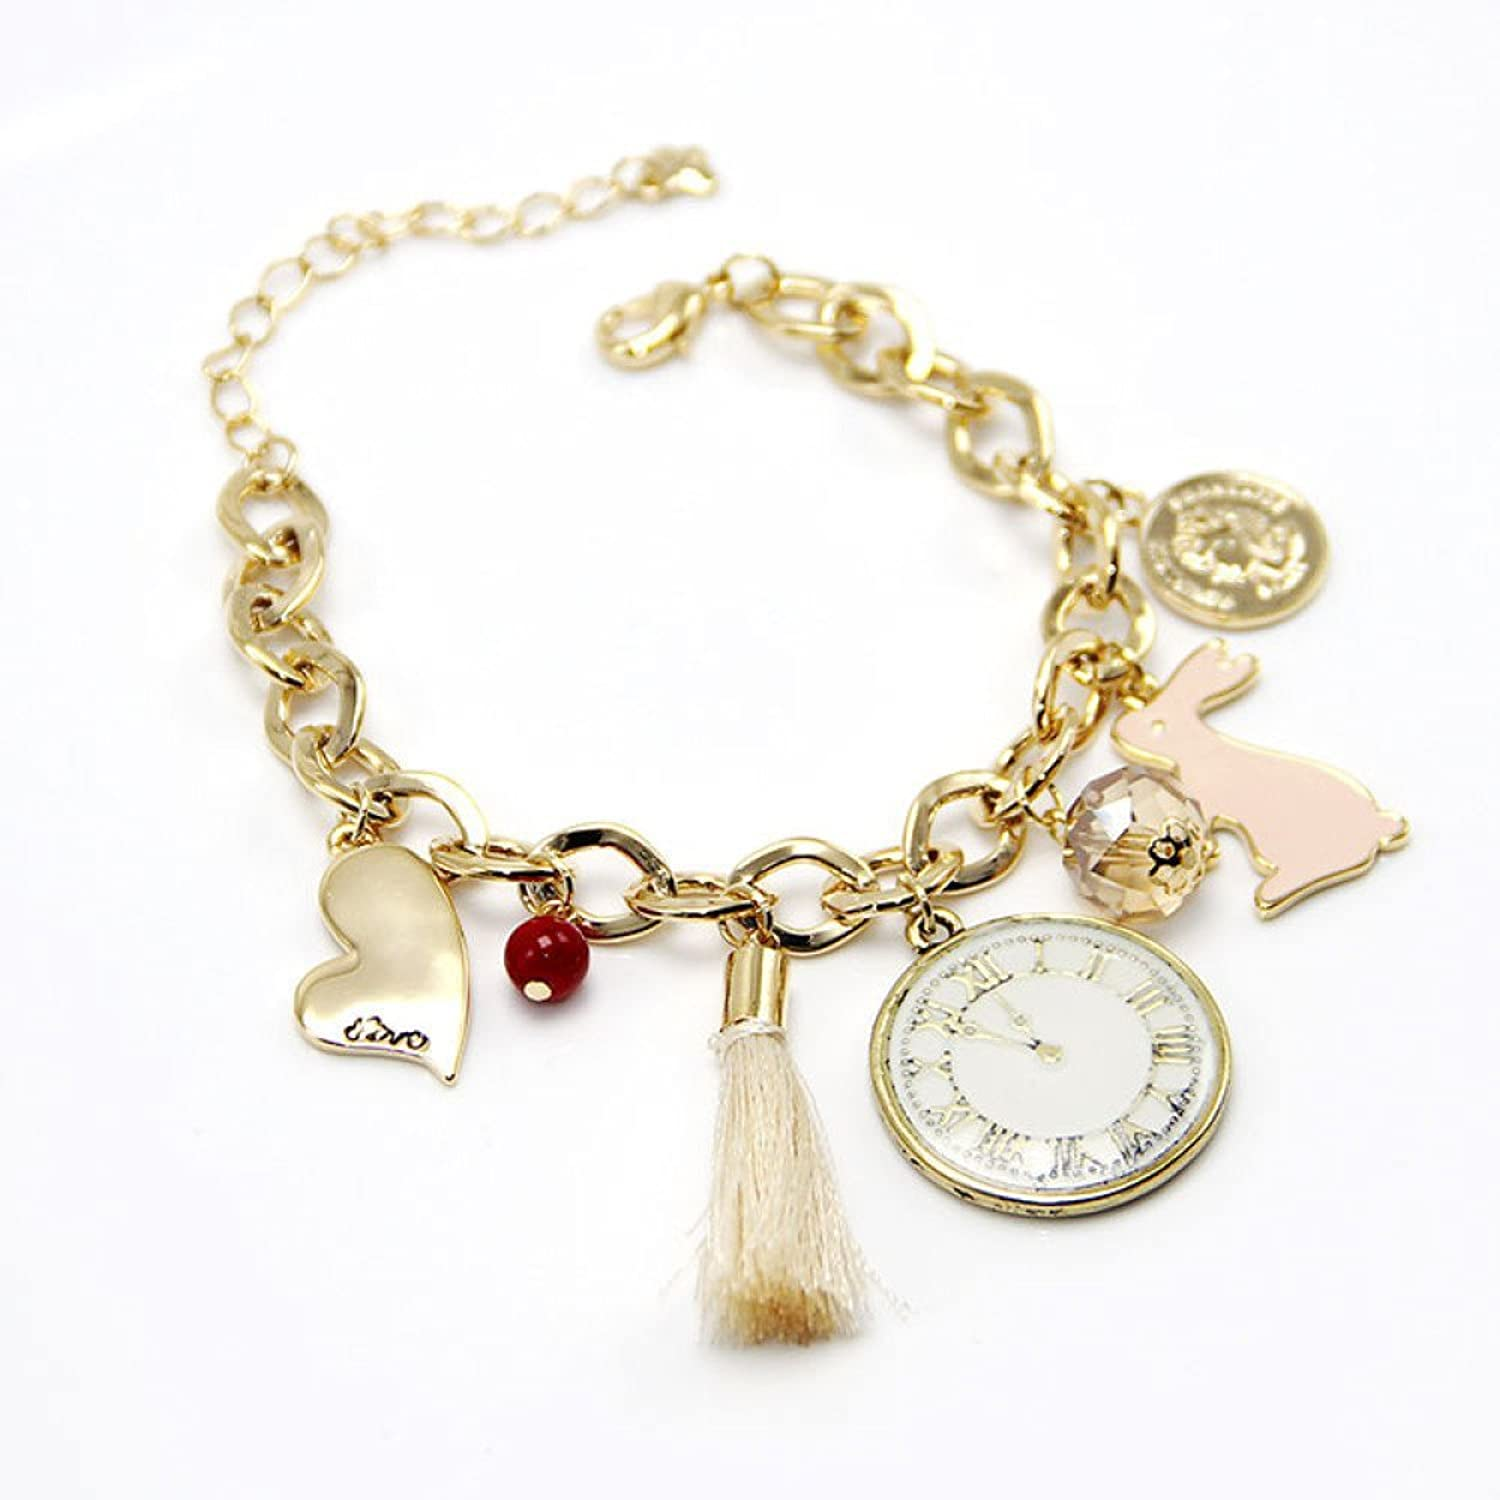 Zicue Stylish Charming Bracelet Exquisite Ornaments Pink Rabbit Tassel Watch Pendant Chain Bracelet